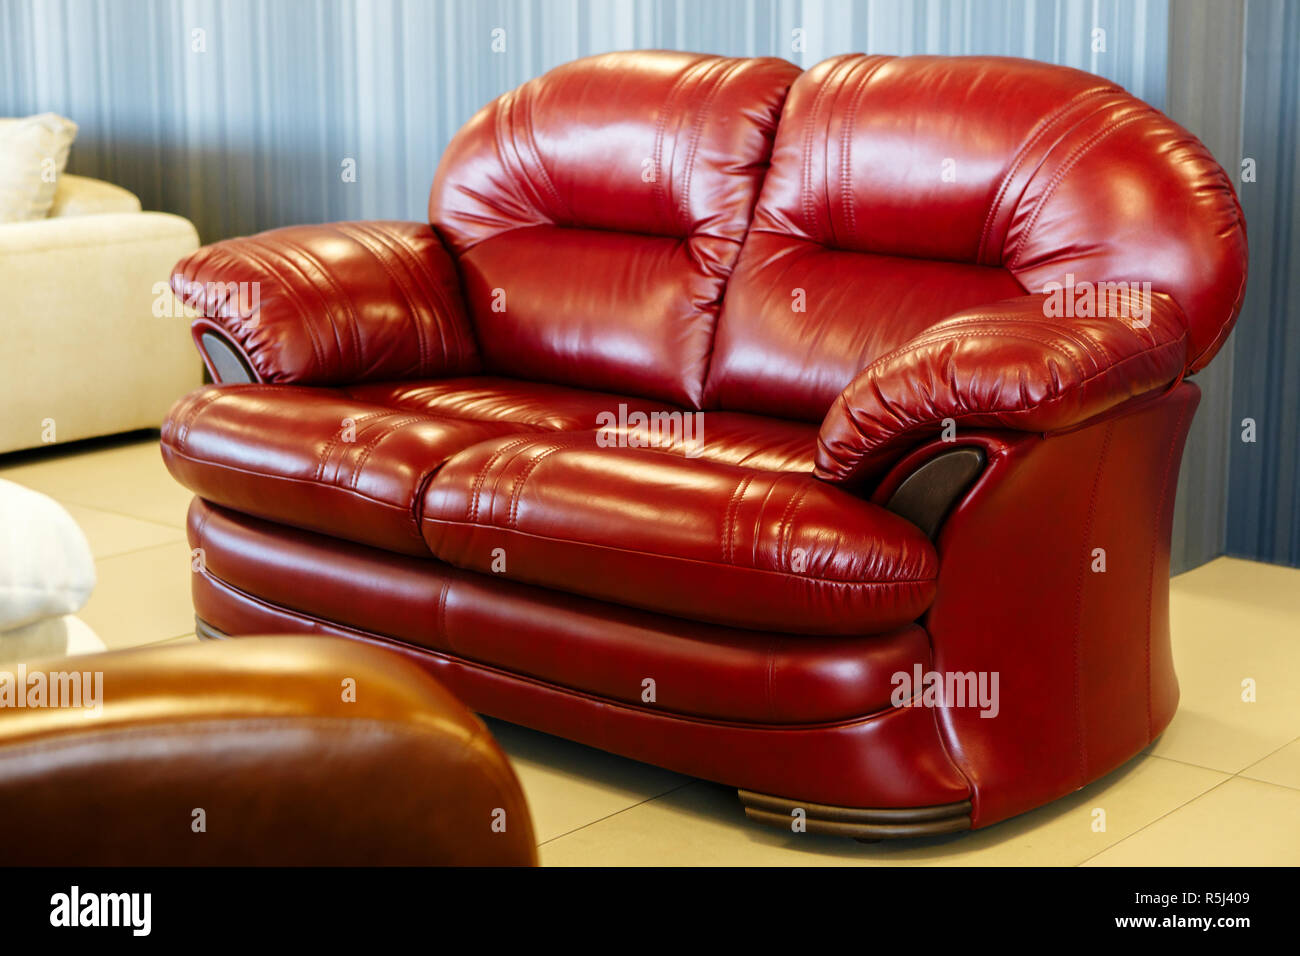 Empty Red Leather Sofa Background Furniture Decoration Stock Photo